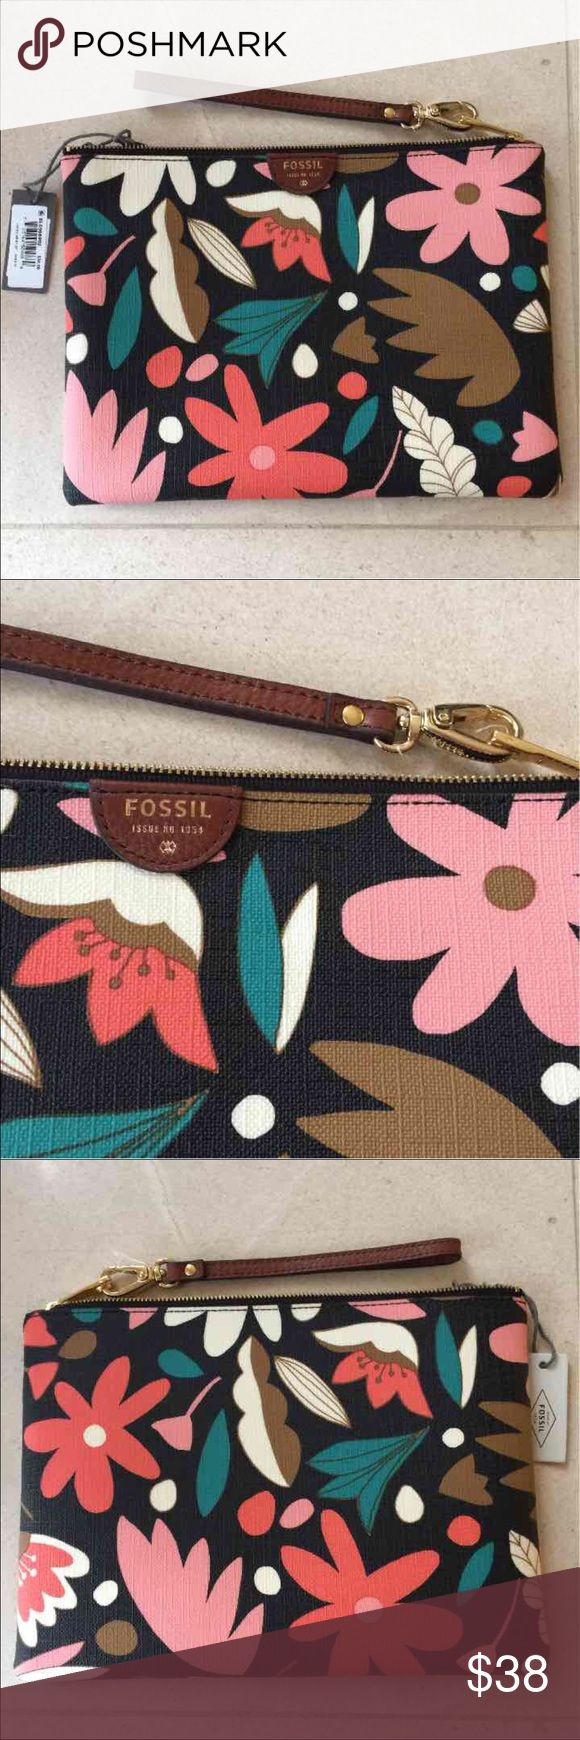 ❤️🌺😍FOSSIL dark floral large wristlet❤️😍🌺🌸 Retail: $50 😍❤️🌺💋 PRETTY!!! ❤️❤️❤️  ***NOT from the outlet store. All Fossil wallets in my store are from department stores like Nordstrom or Macy's.   A dark floral print adds a fresh touch to this printed PVC wristlet.  The gorgeous wallet is large enough to hold a Samsung Galaxy S4®, iPhone® 6, and iPhone 6 PLUS.  6 Credit Card Slots  Exterior Material: 100% Polyvinyl Chloride (PVC) Closure: Zipper Handles/Straps: 1 Wristlet Strap…